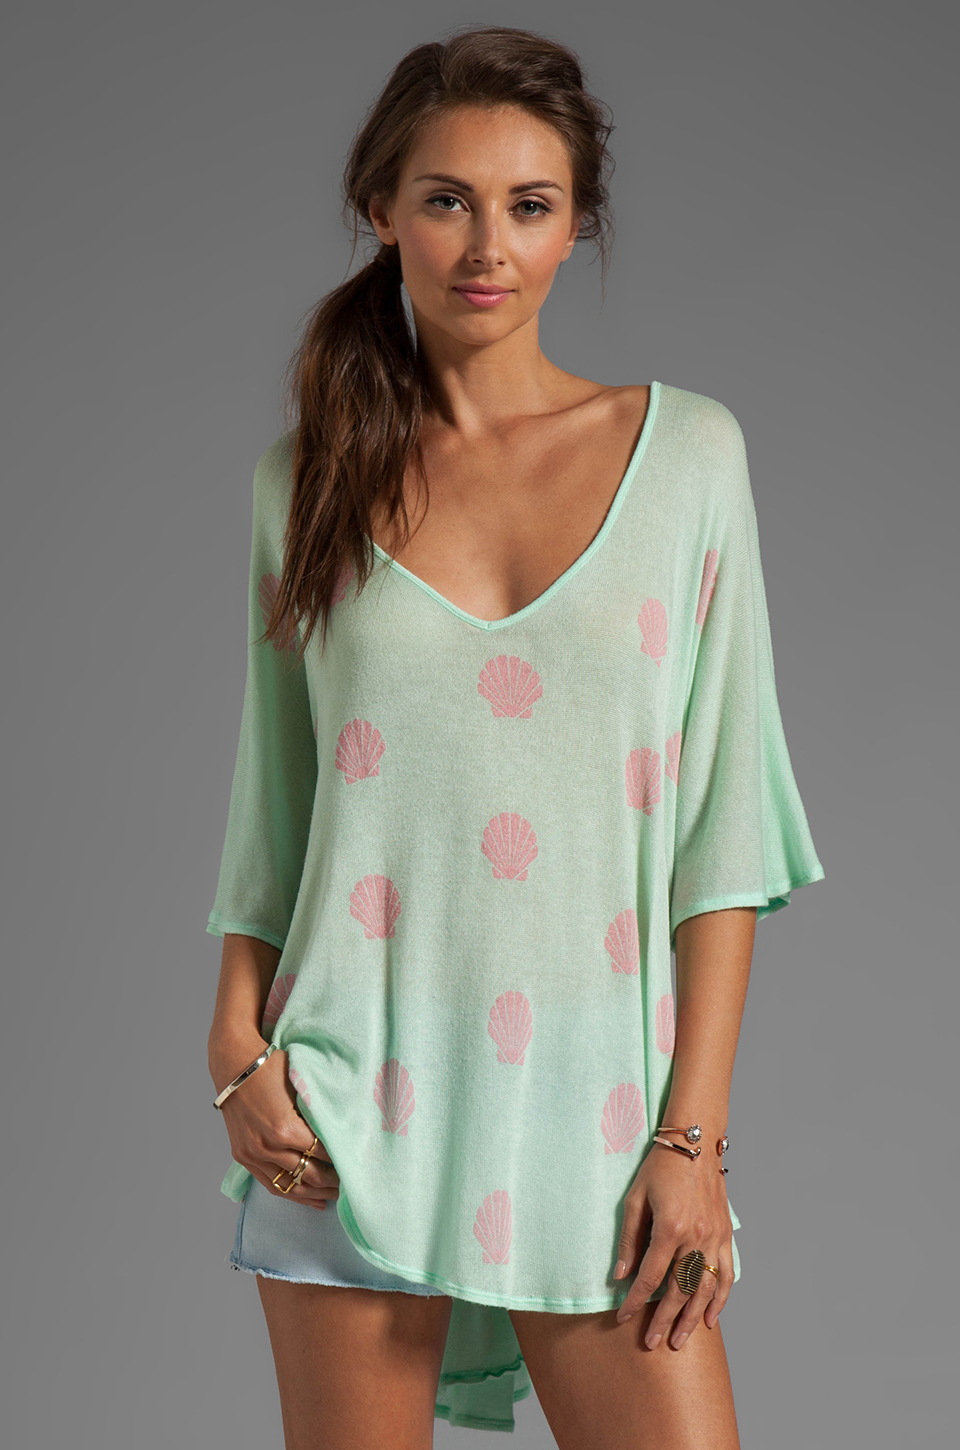 Wildfox Couture Little Mermaid Tahiti Tunic in Pool Party